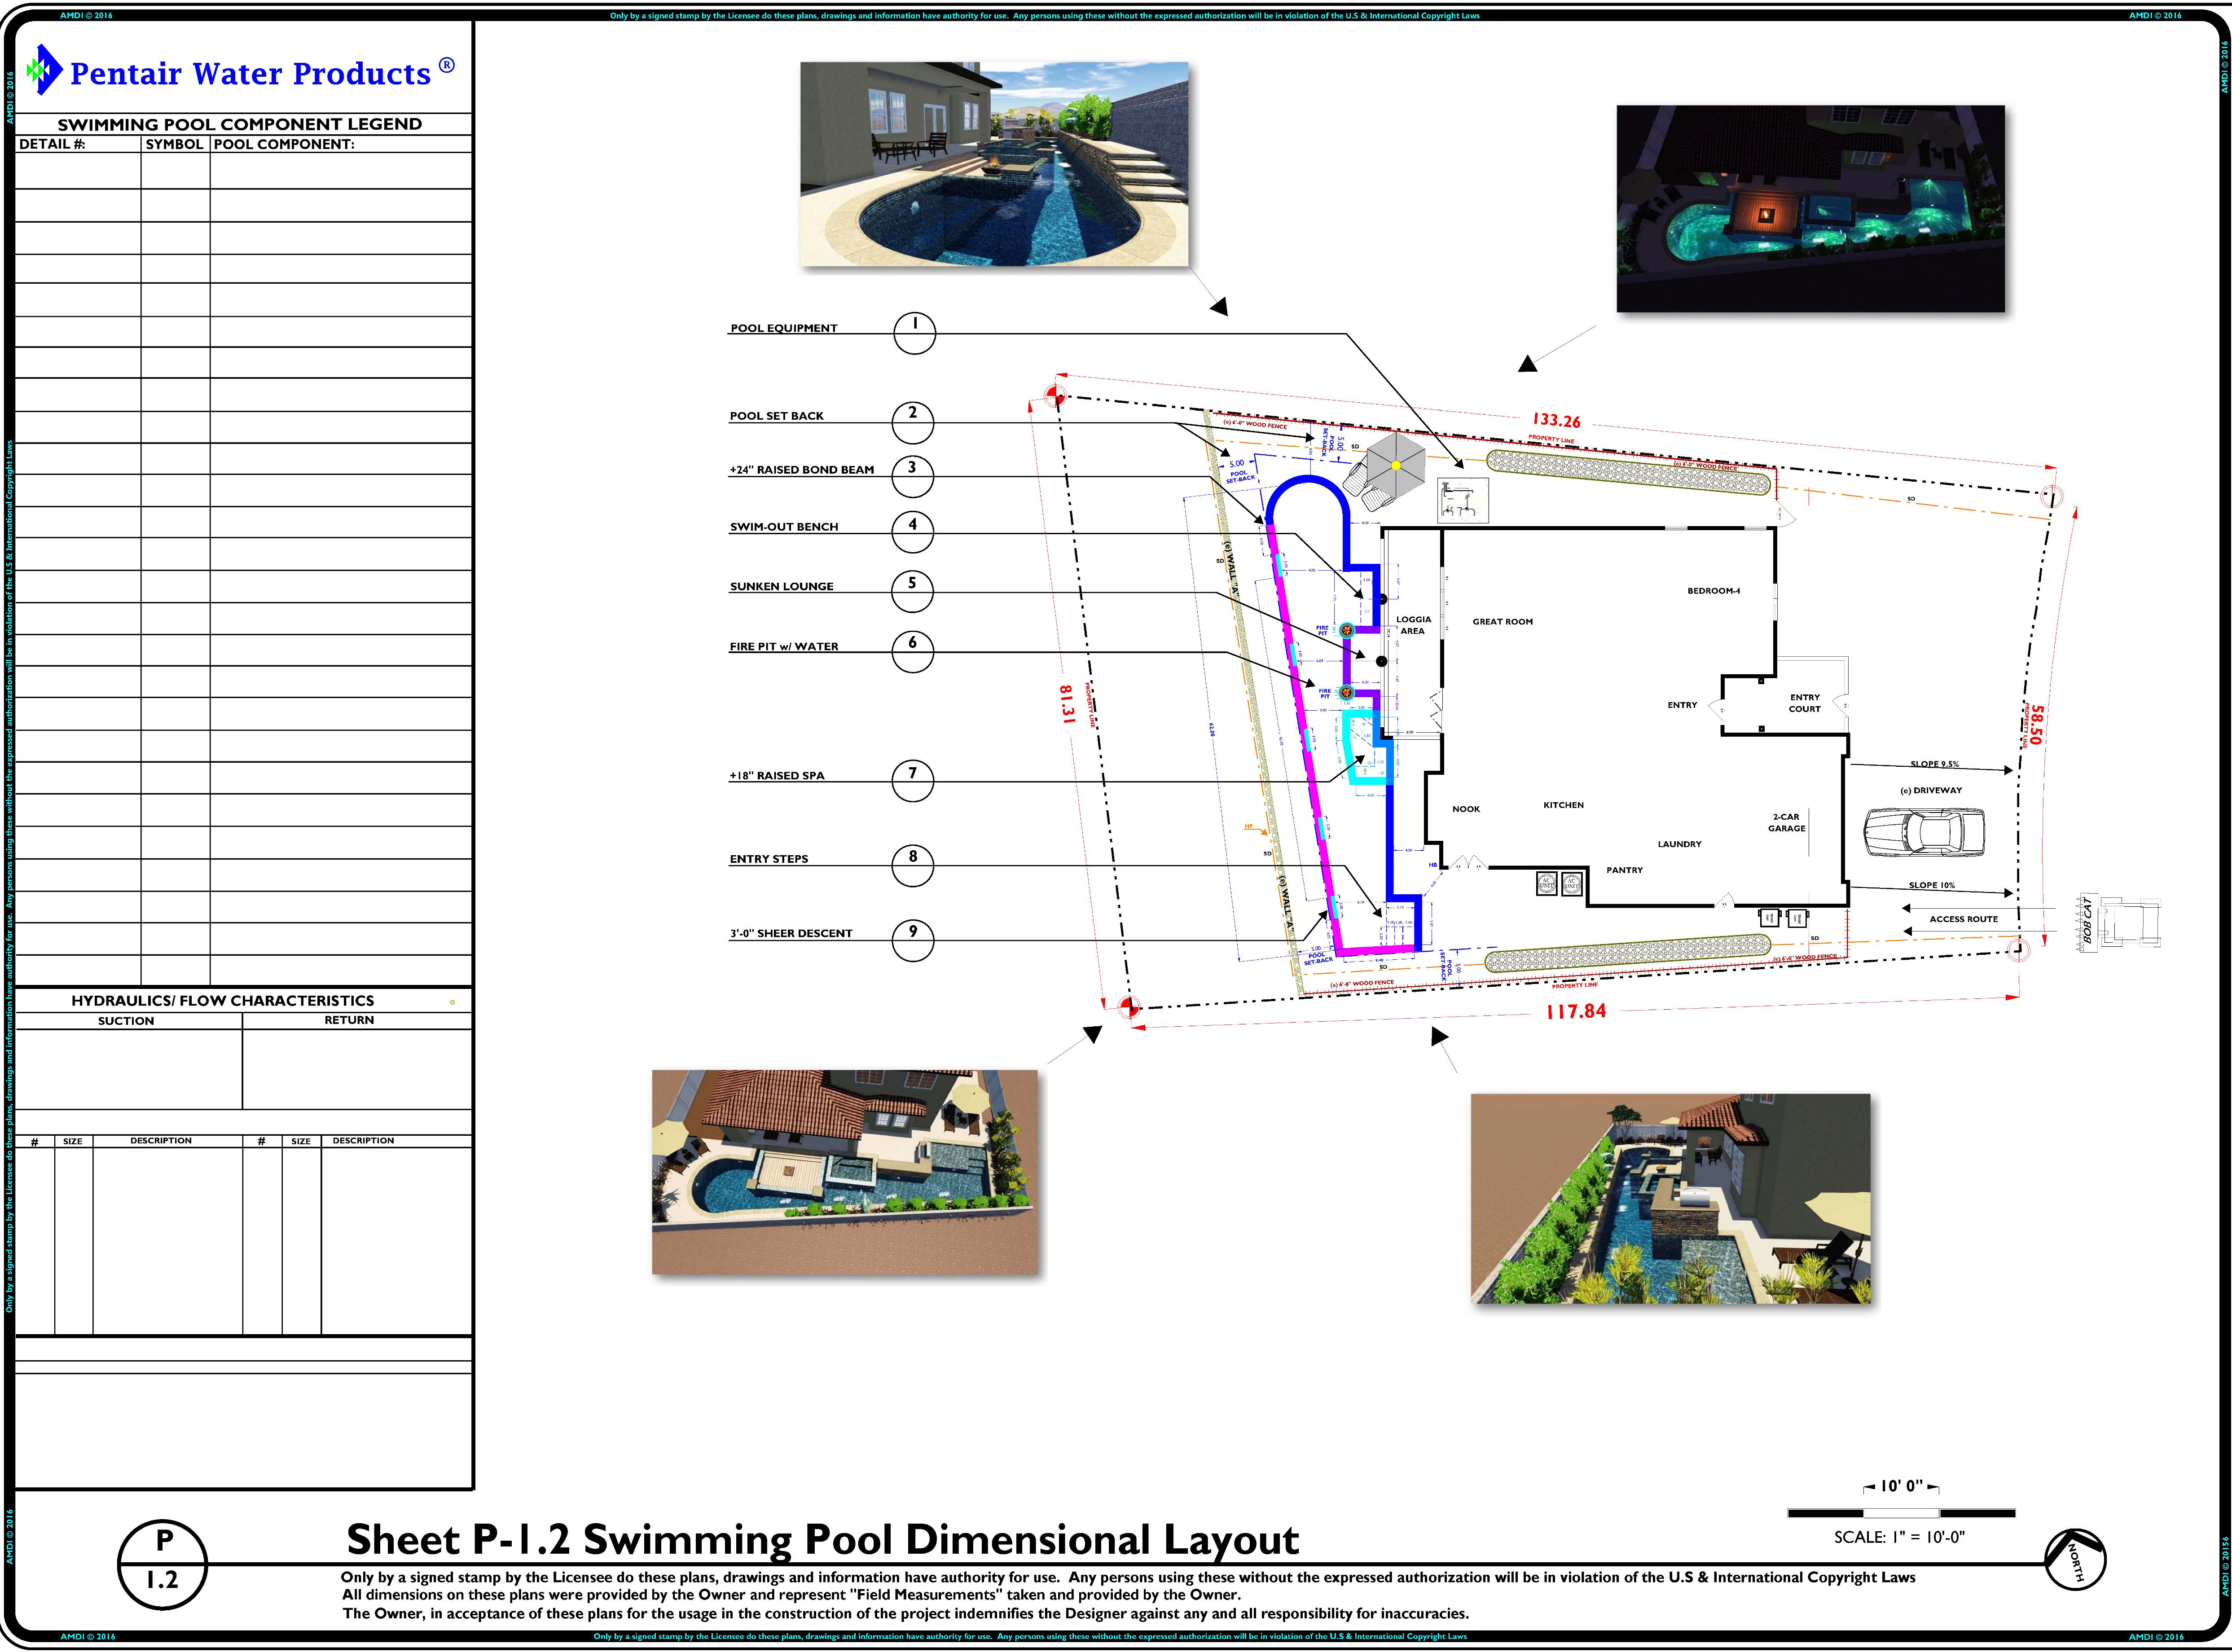 P-1.2 Preliminary Swimming Pool & Spa Site Plan Layout - REV-1